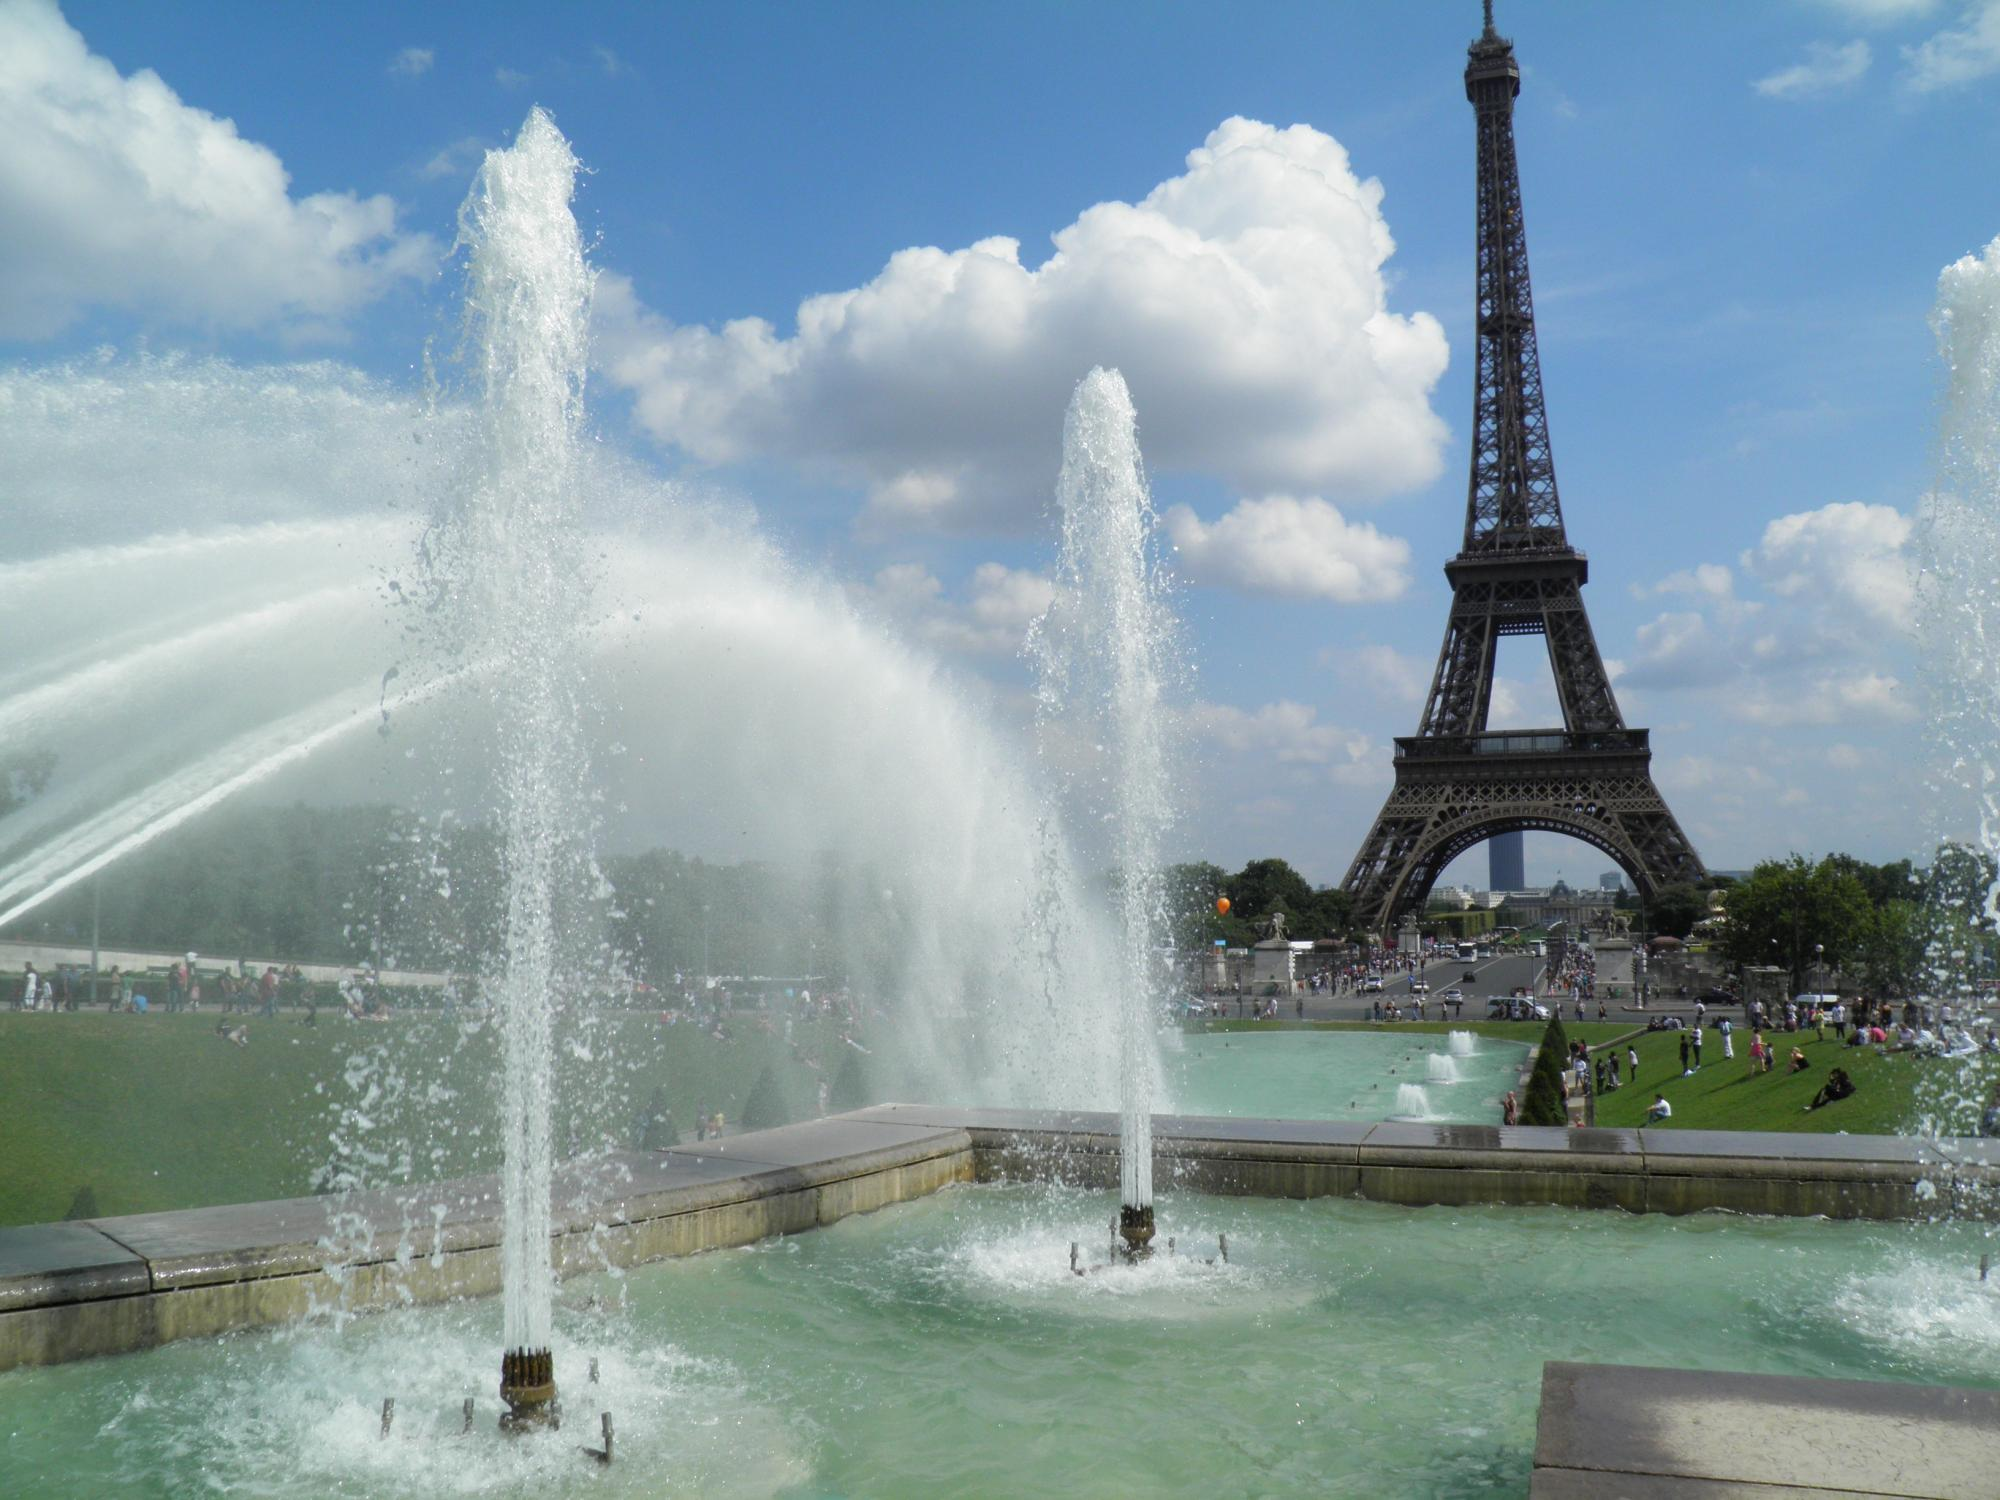 Discover Paris - Vacation package : France Coast to Coast  - Land of France, travel agency in France